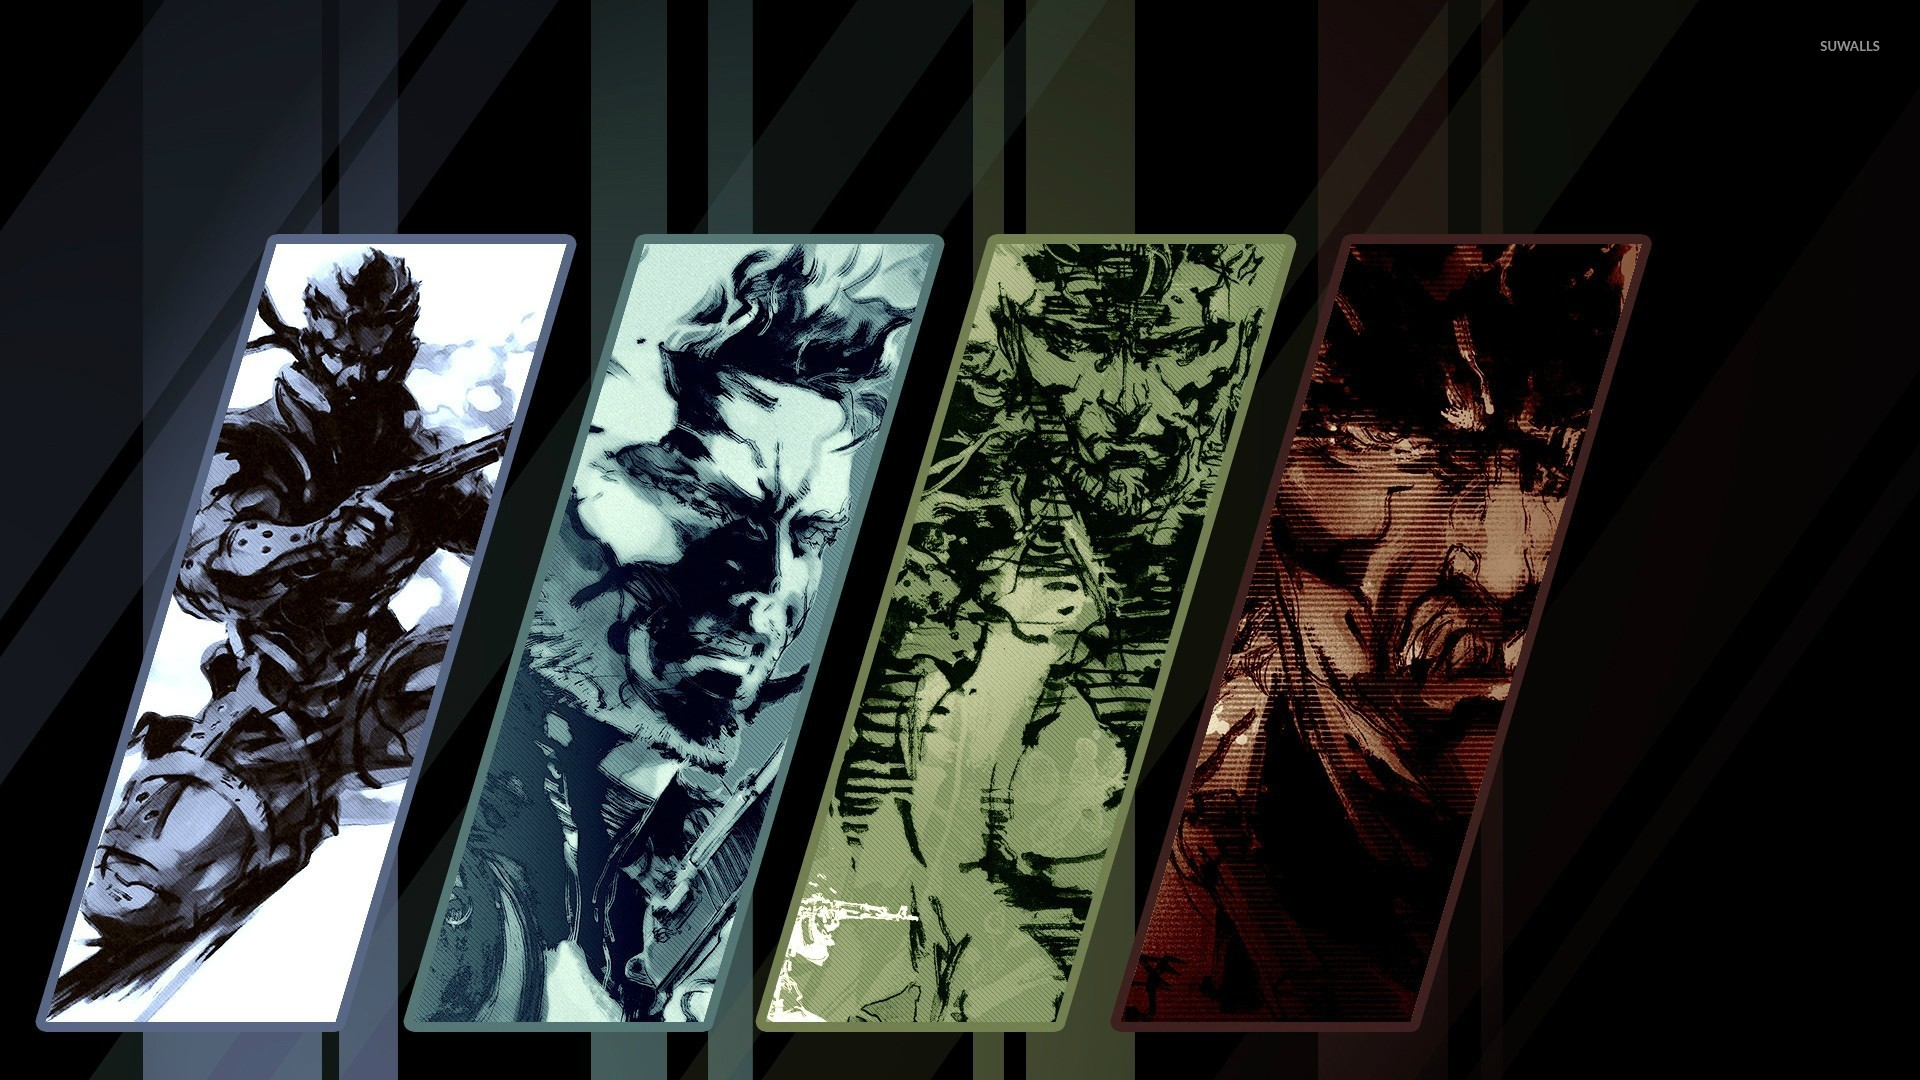 Metal Gear Solid 4 Guns Of The Patriots Wallpaper Game